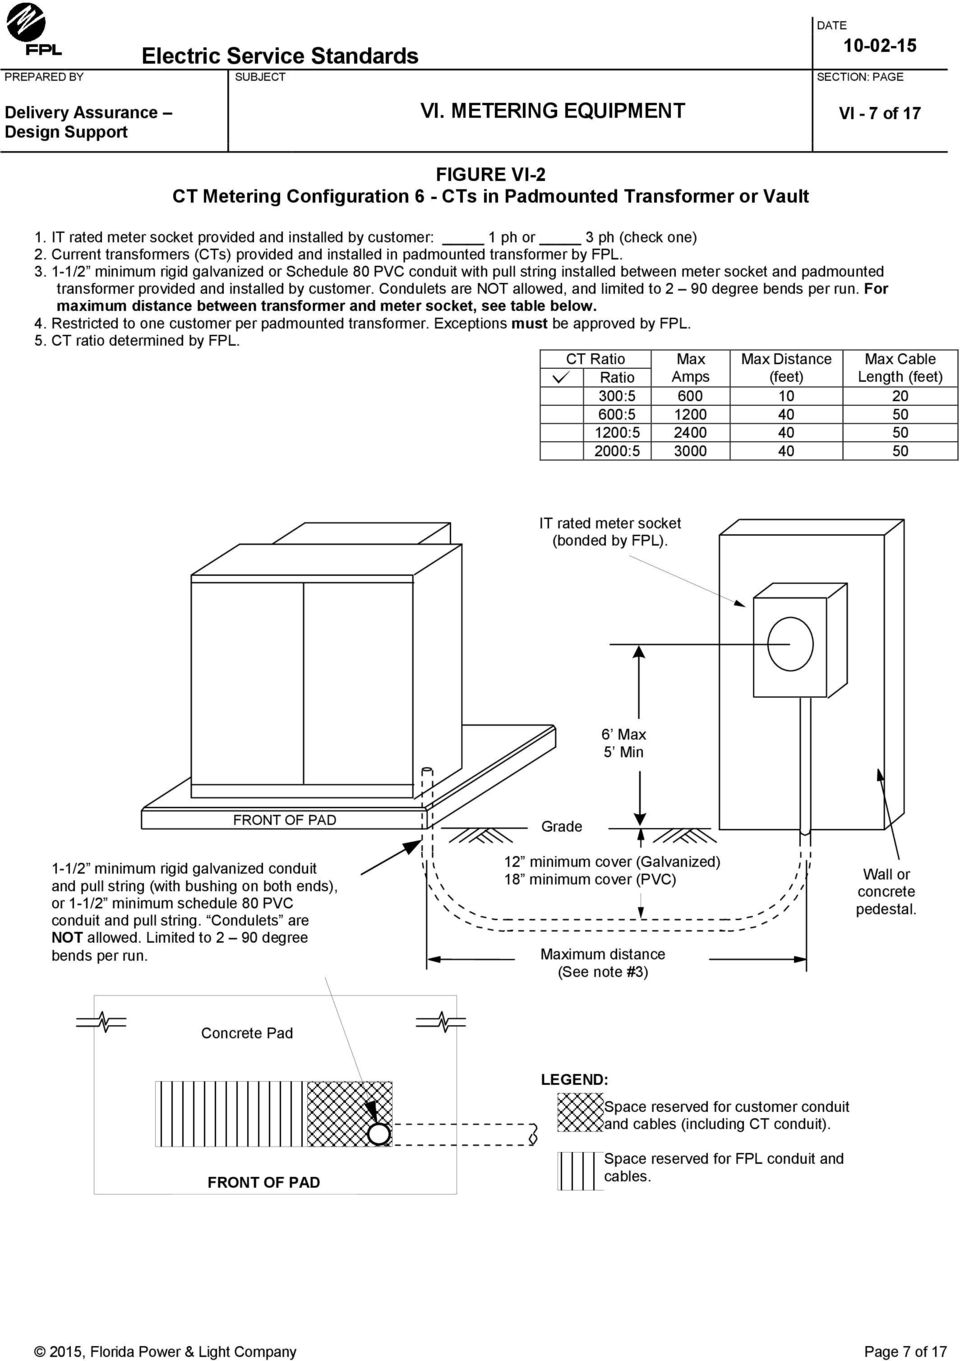 Electric Service Standards Pdf Diagram For Meter Base Wiring With Cts 1 2 Minimum Rigid Galvanized Or Schedule 80 Pvc Conduit Pull String